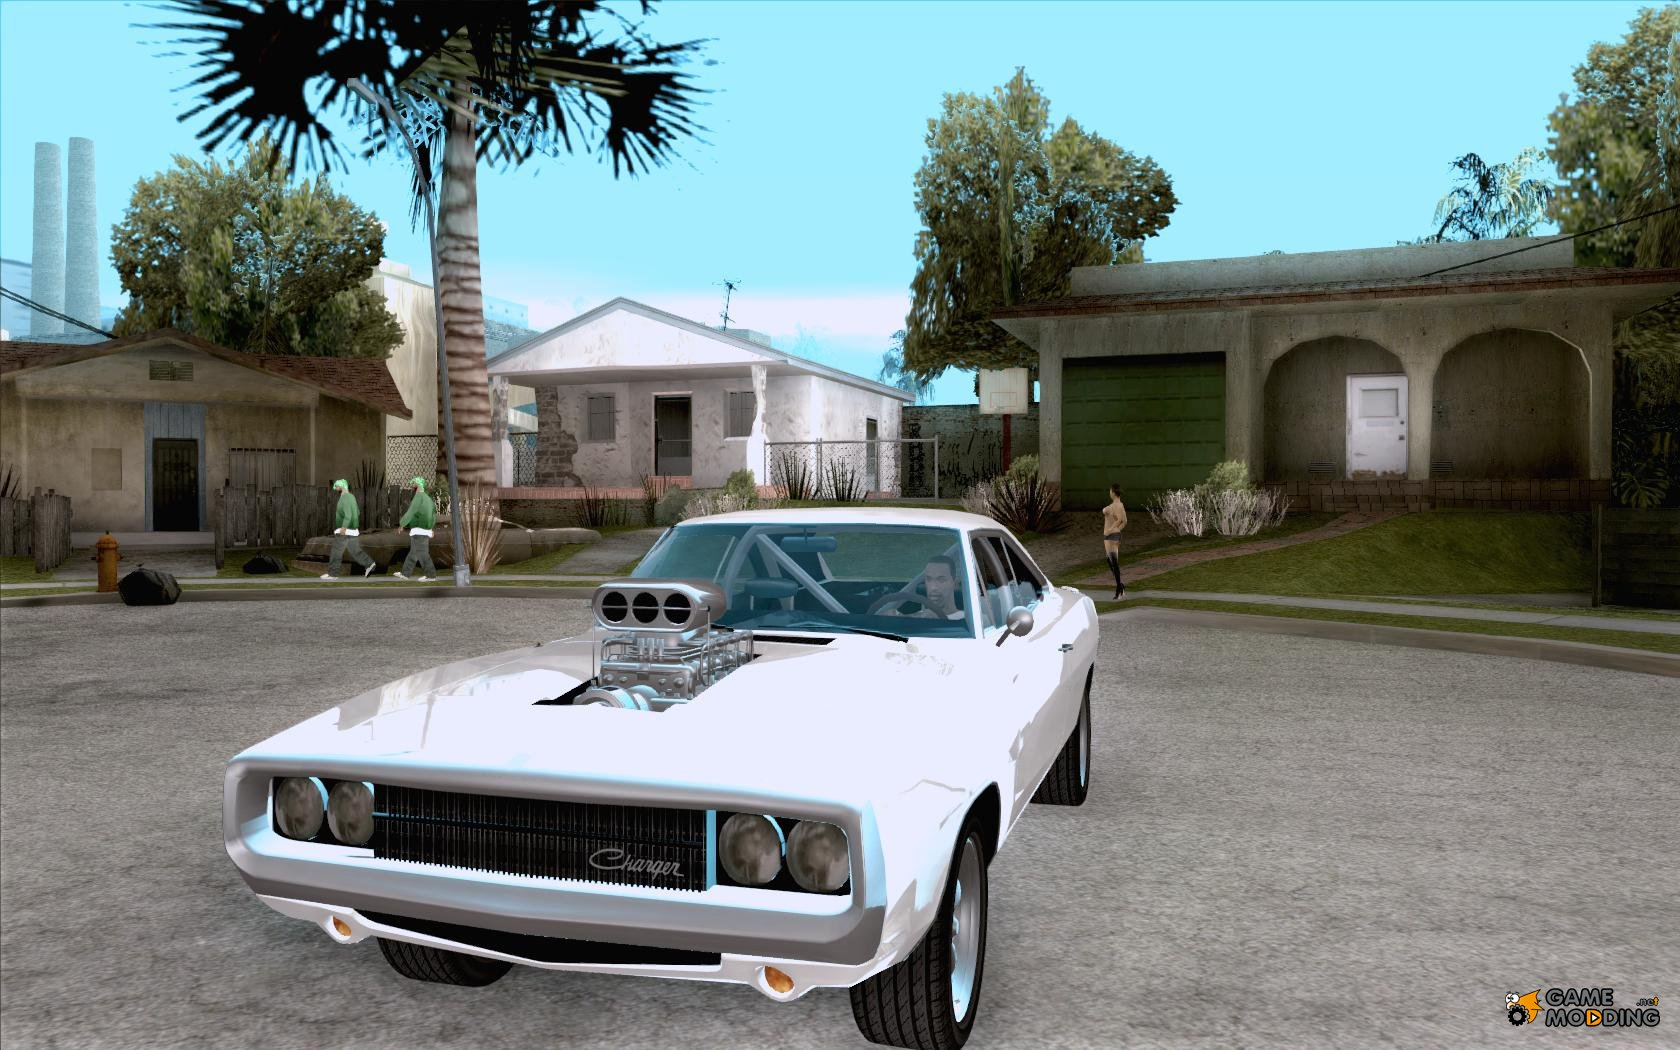 GTA 5 Cars in Fast and Furious Charger